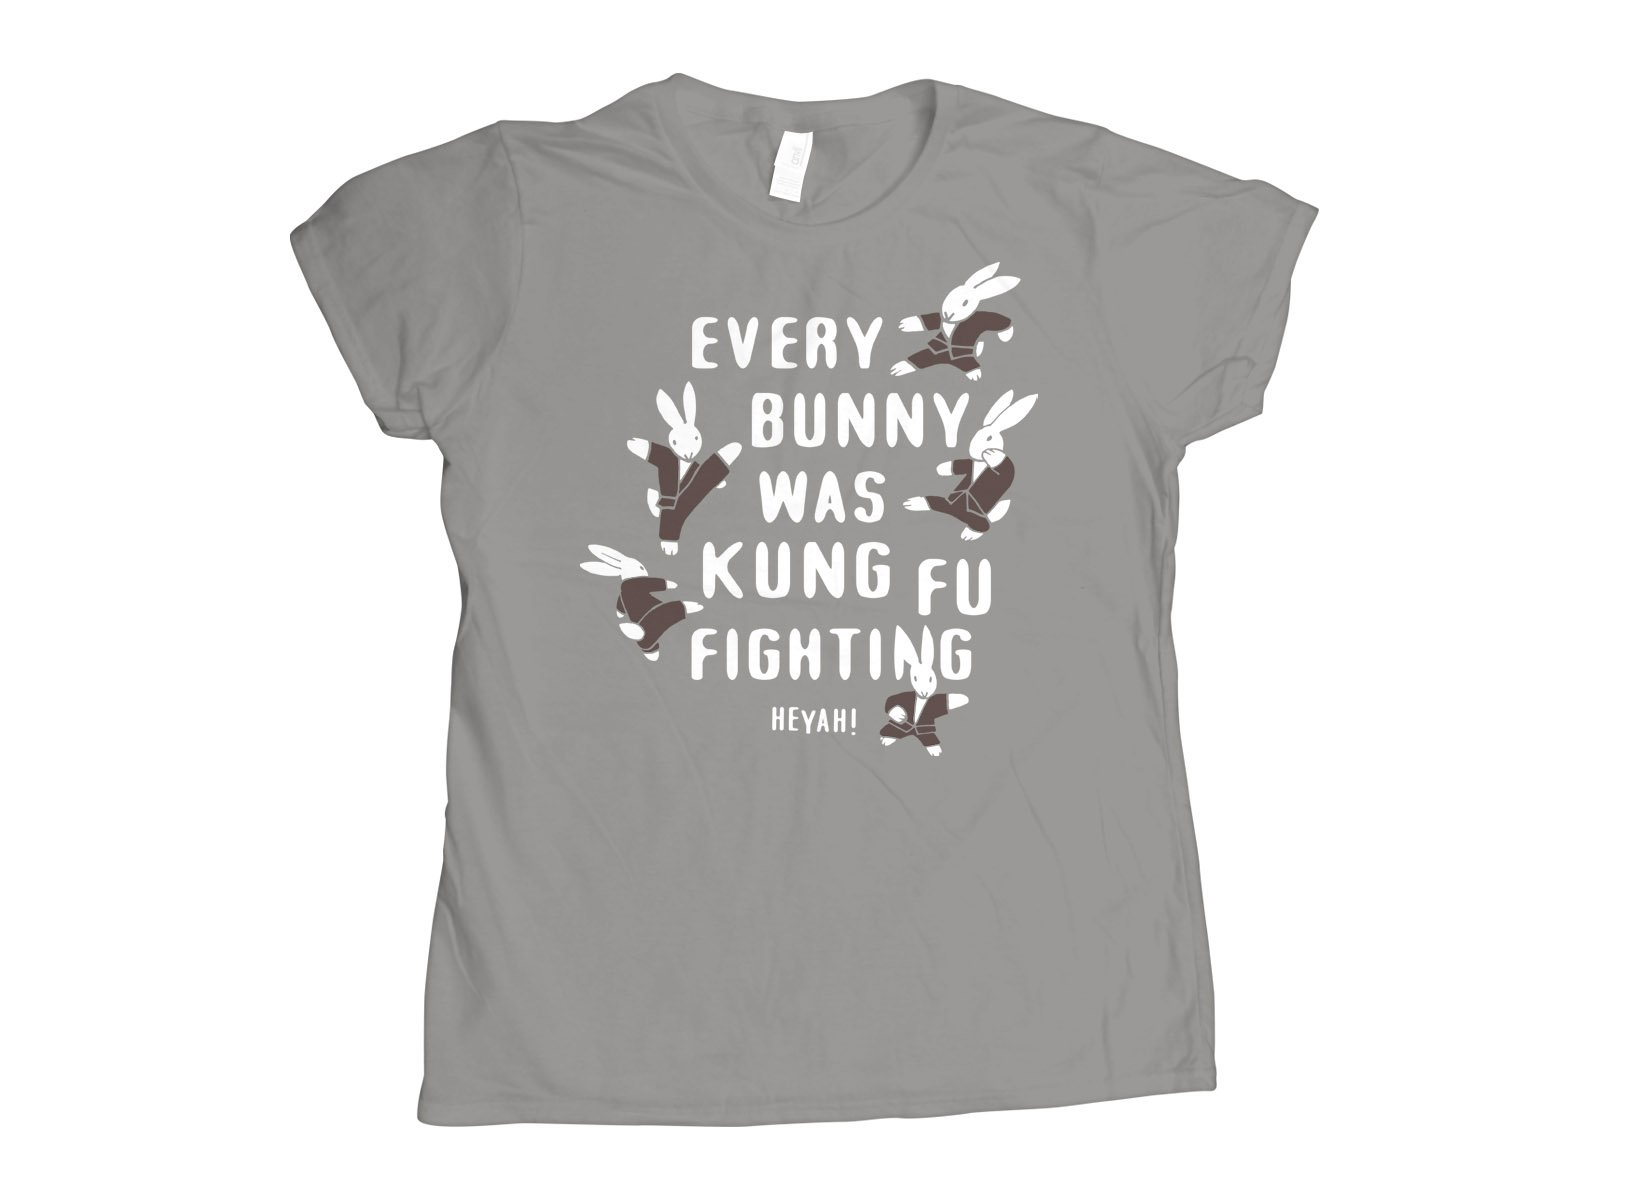 Every Bunny Was Kung Fu Fighting on Womens T-Shirt